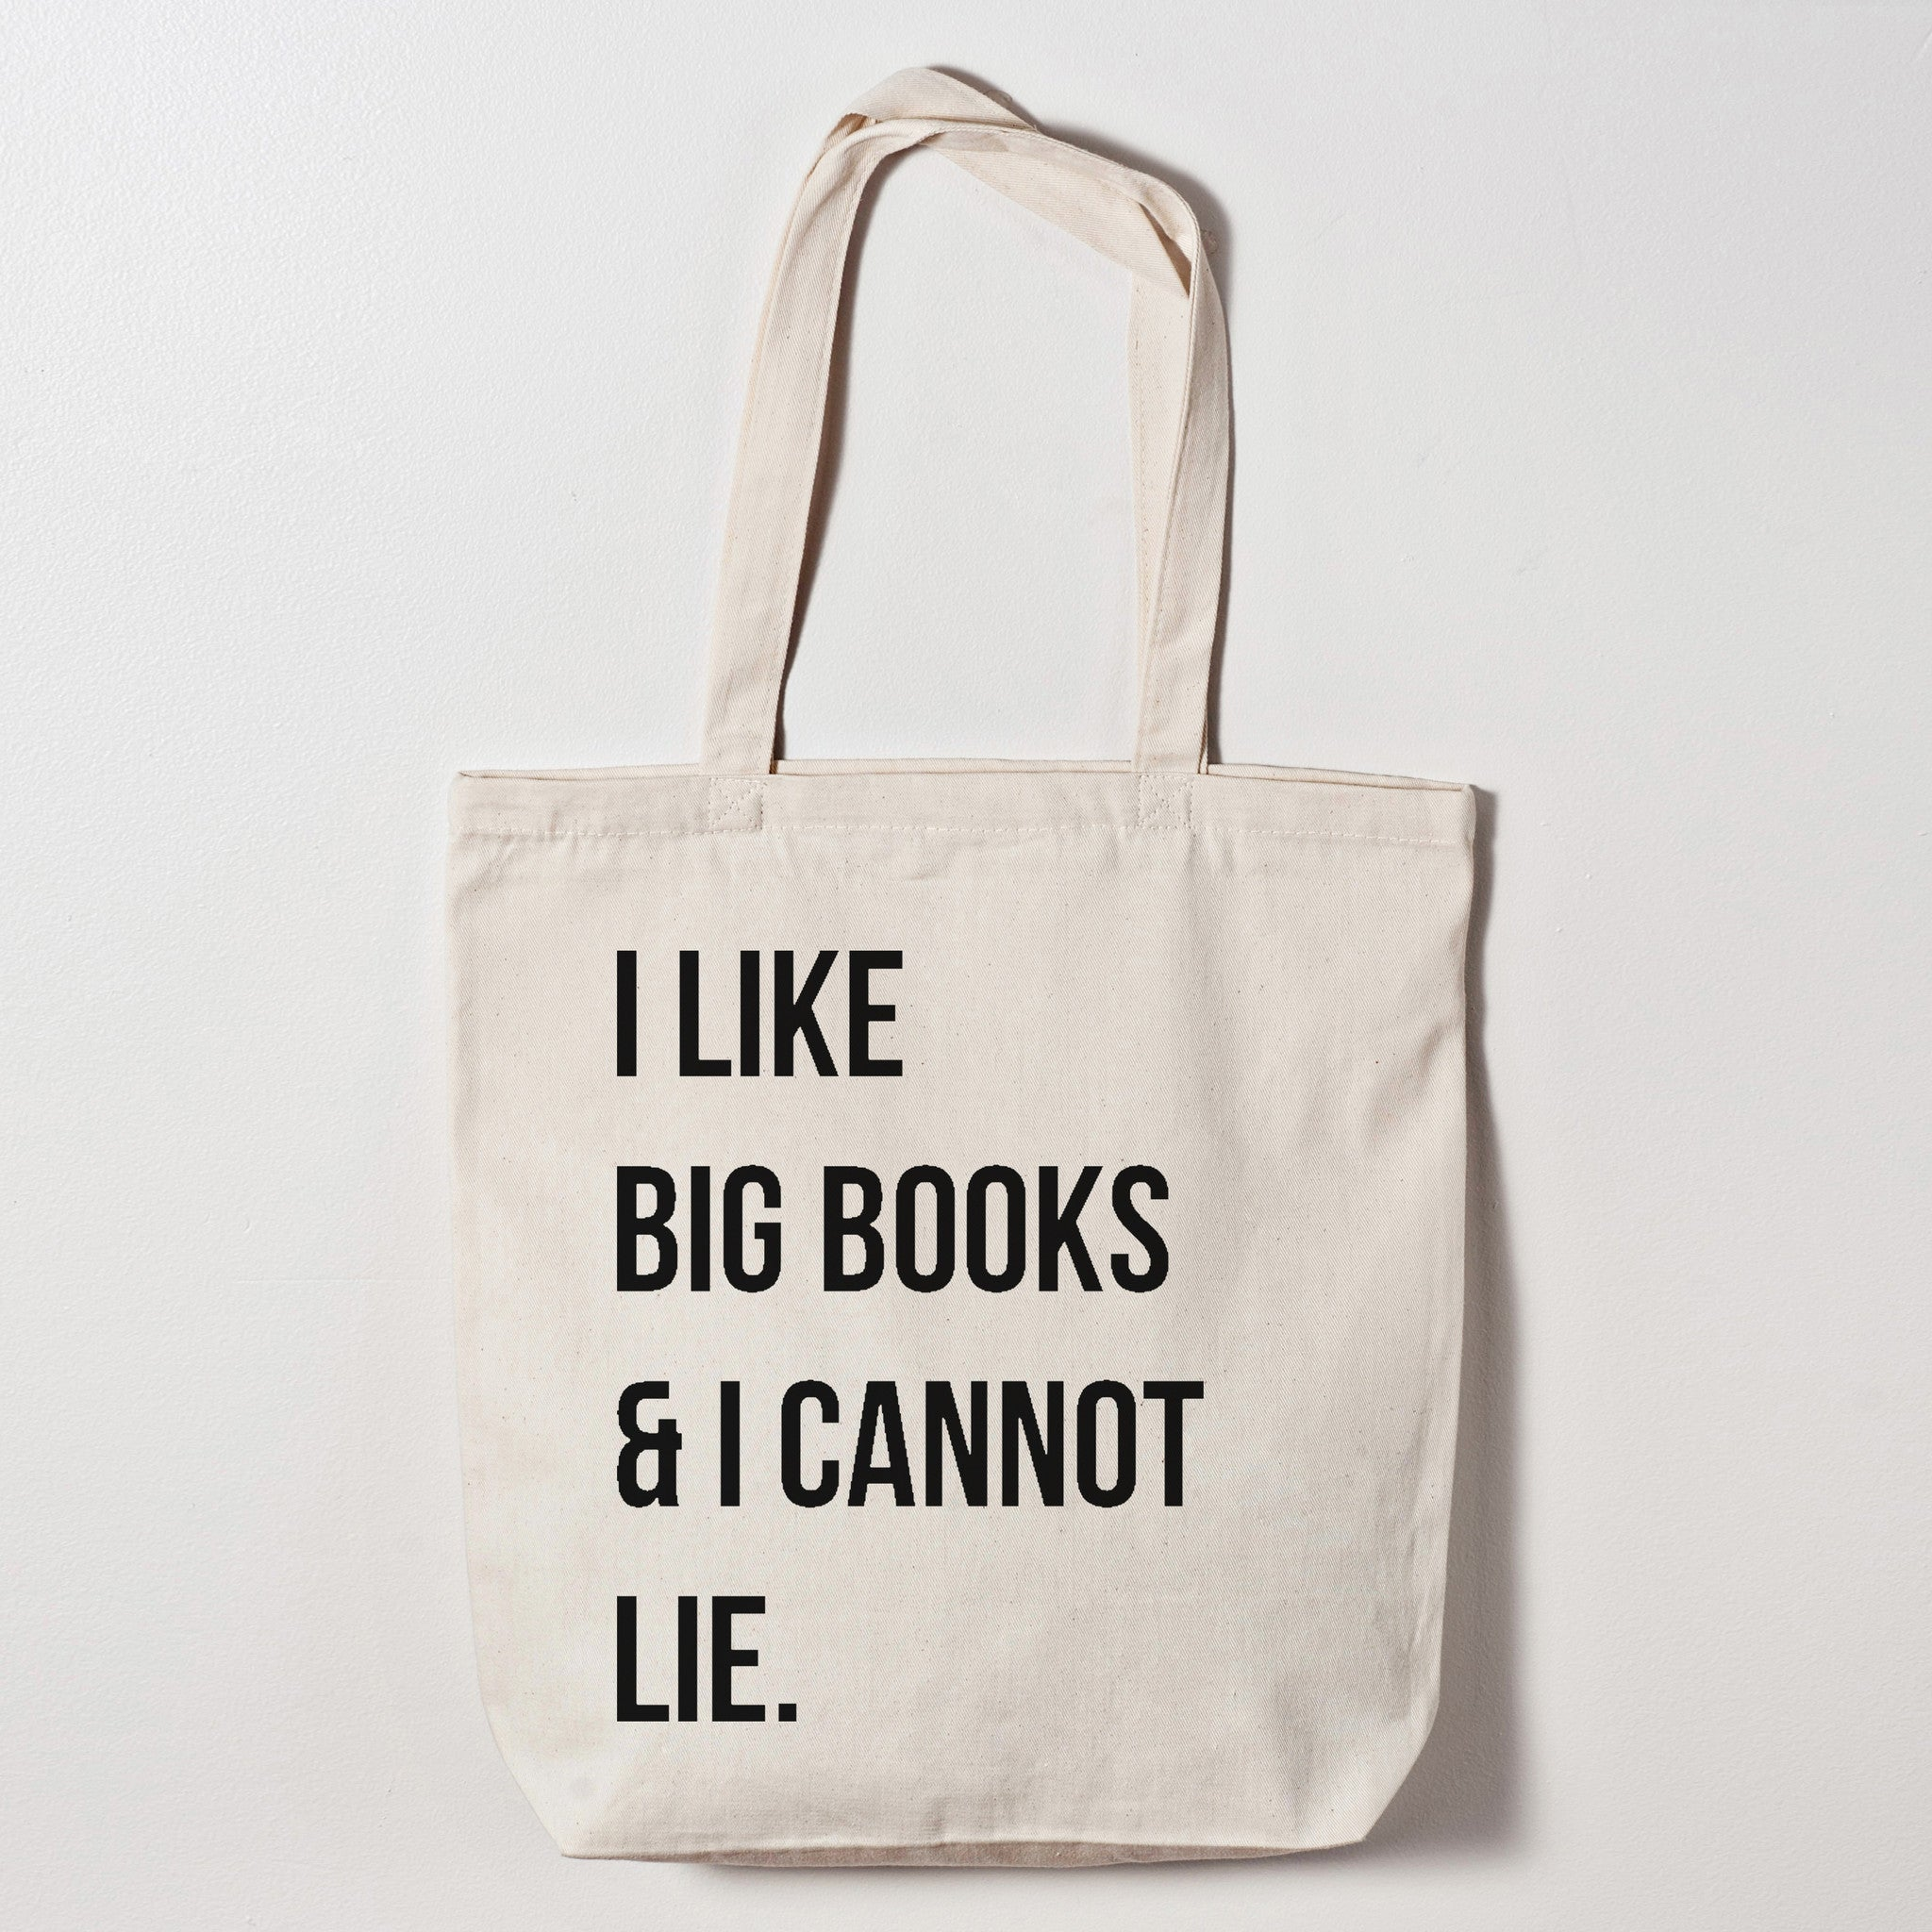 I Like Big Books And Cannot Lie Canvas Tote Bag